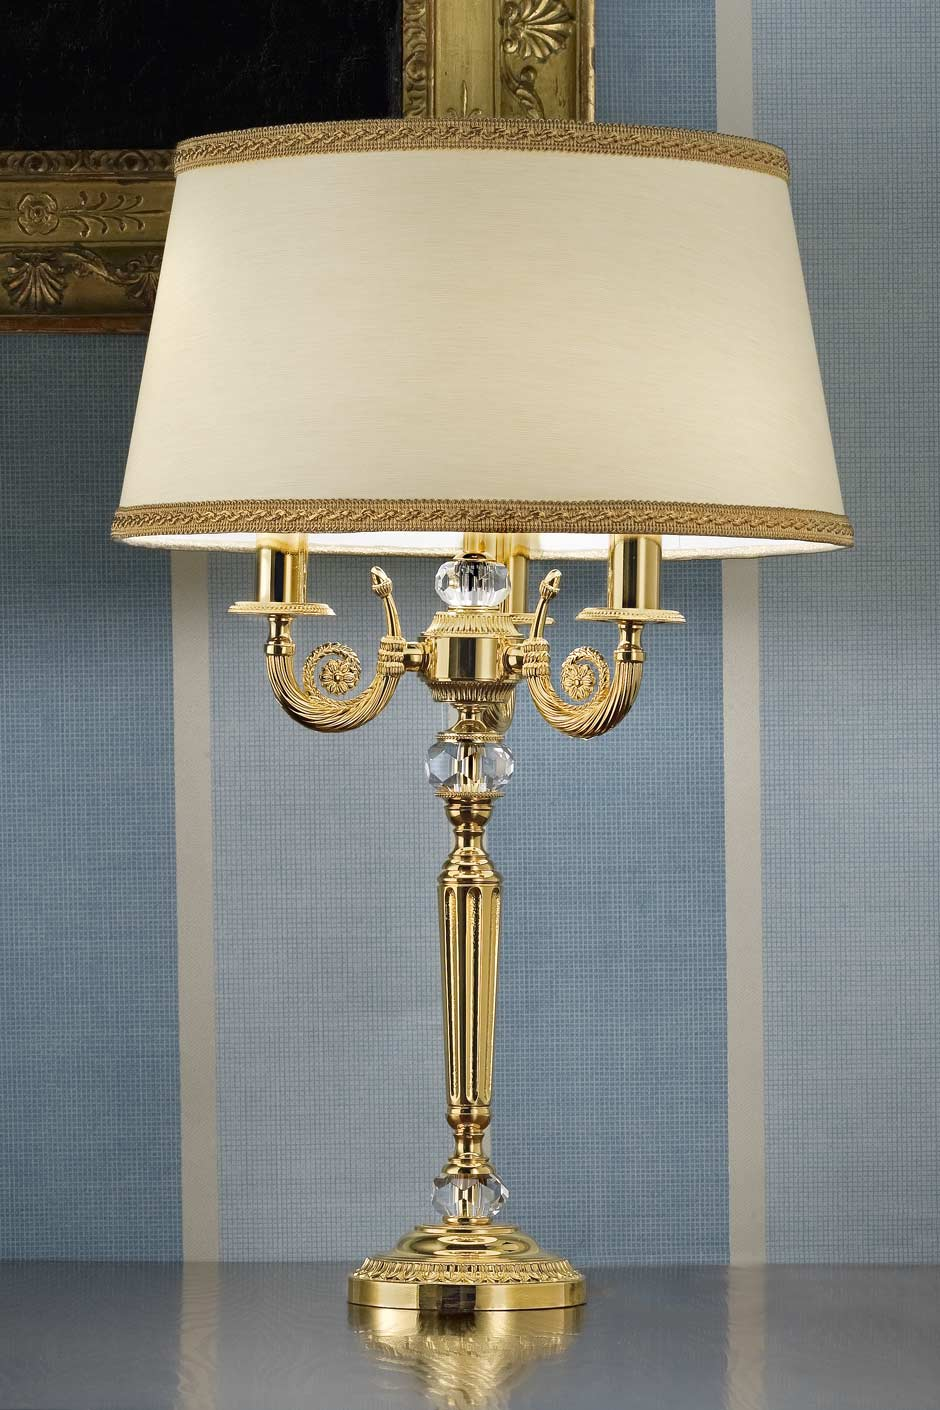 Gold plated metal table lamp with crystal details masiero gold plated metal table lamp with crystal details masiero geotapseo Image collections